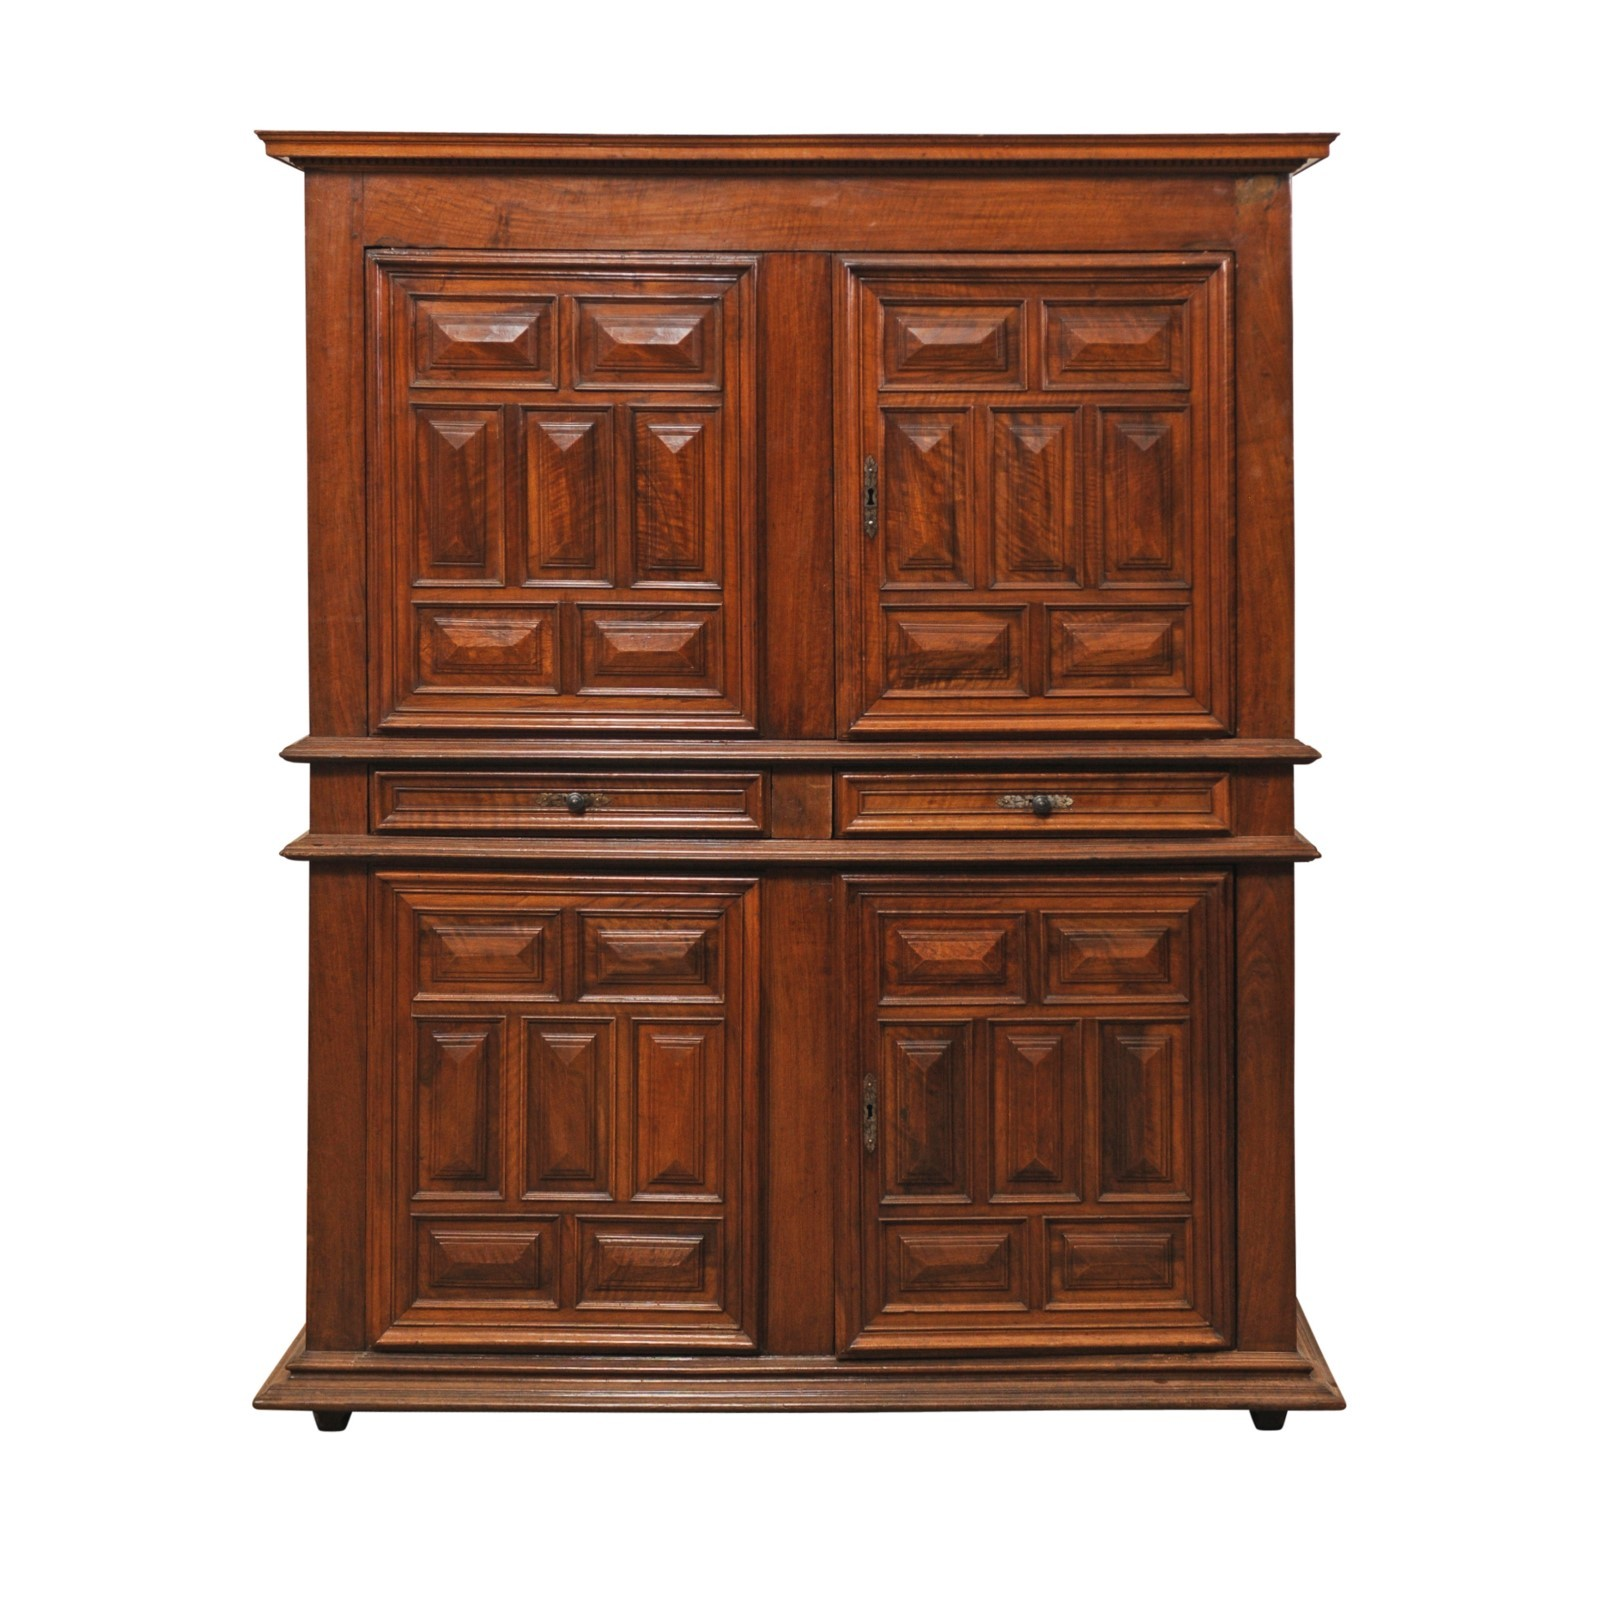 French Walnut Raised-Panel Tall Cabinet